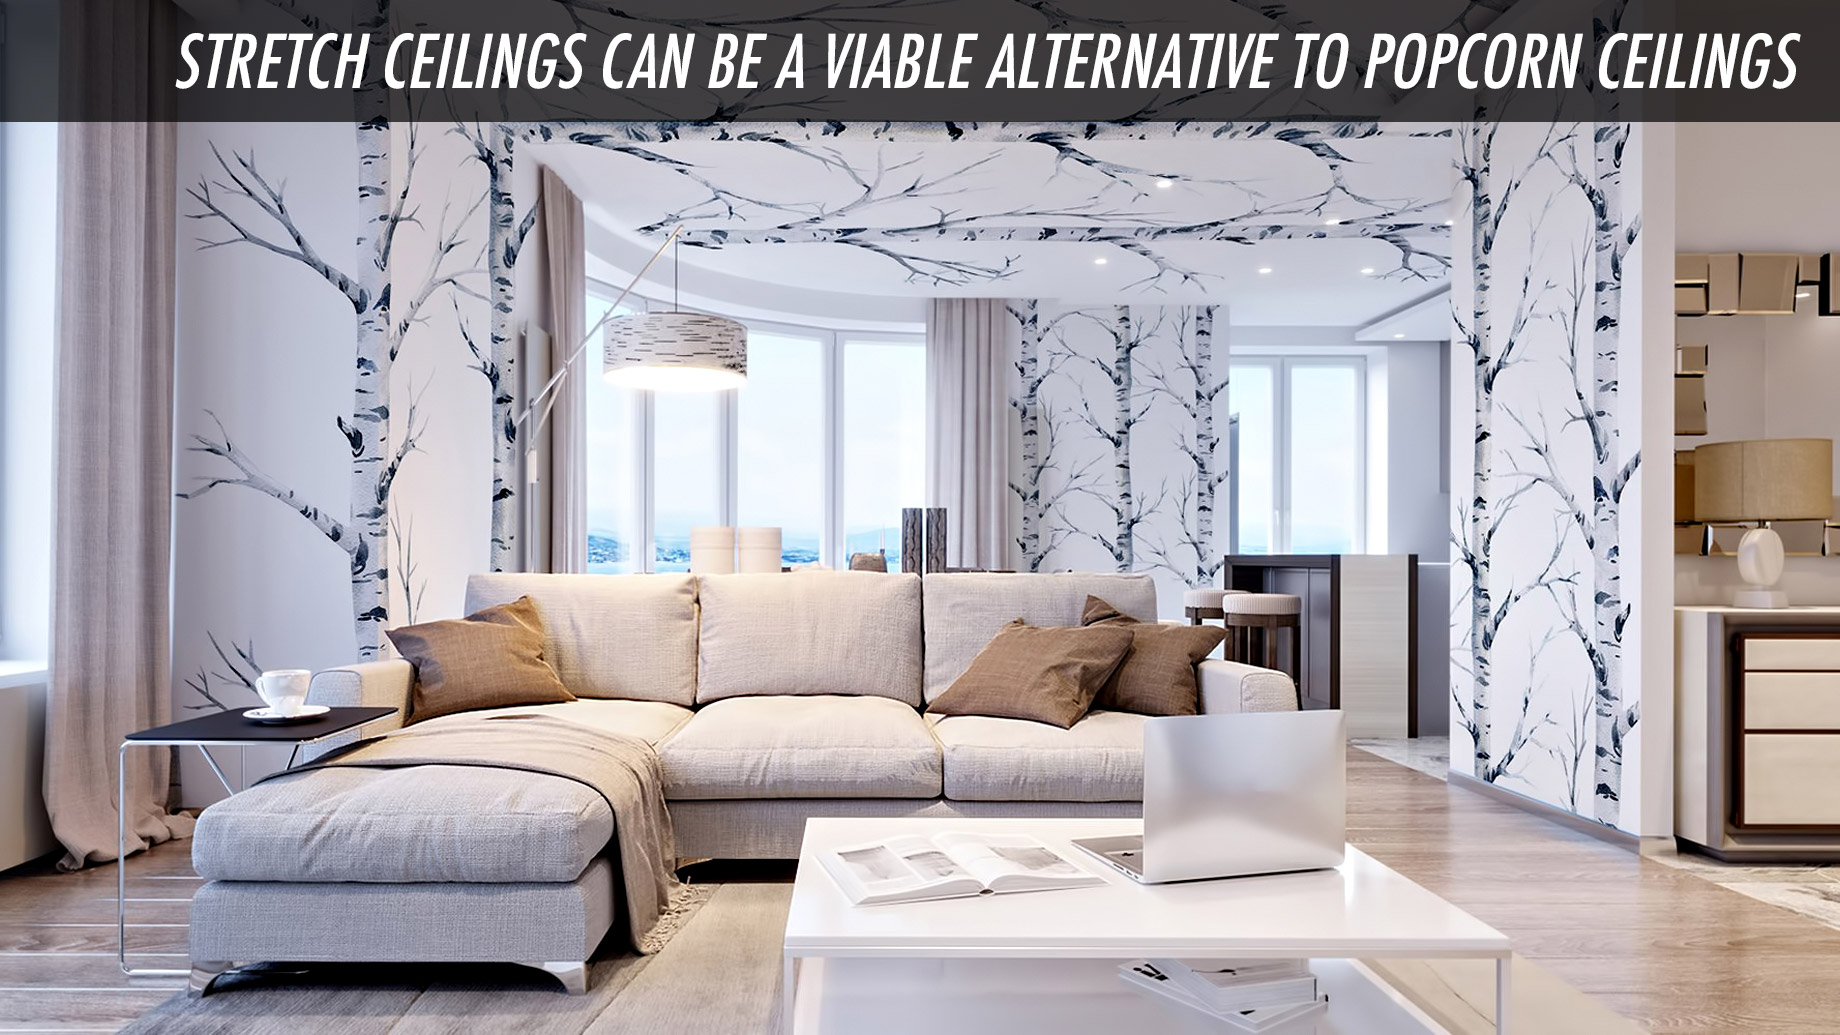 Stretch Ceilings Can Be a Viable Alternative to Popcorn Ceilings